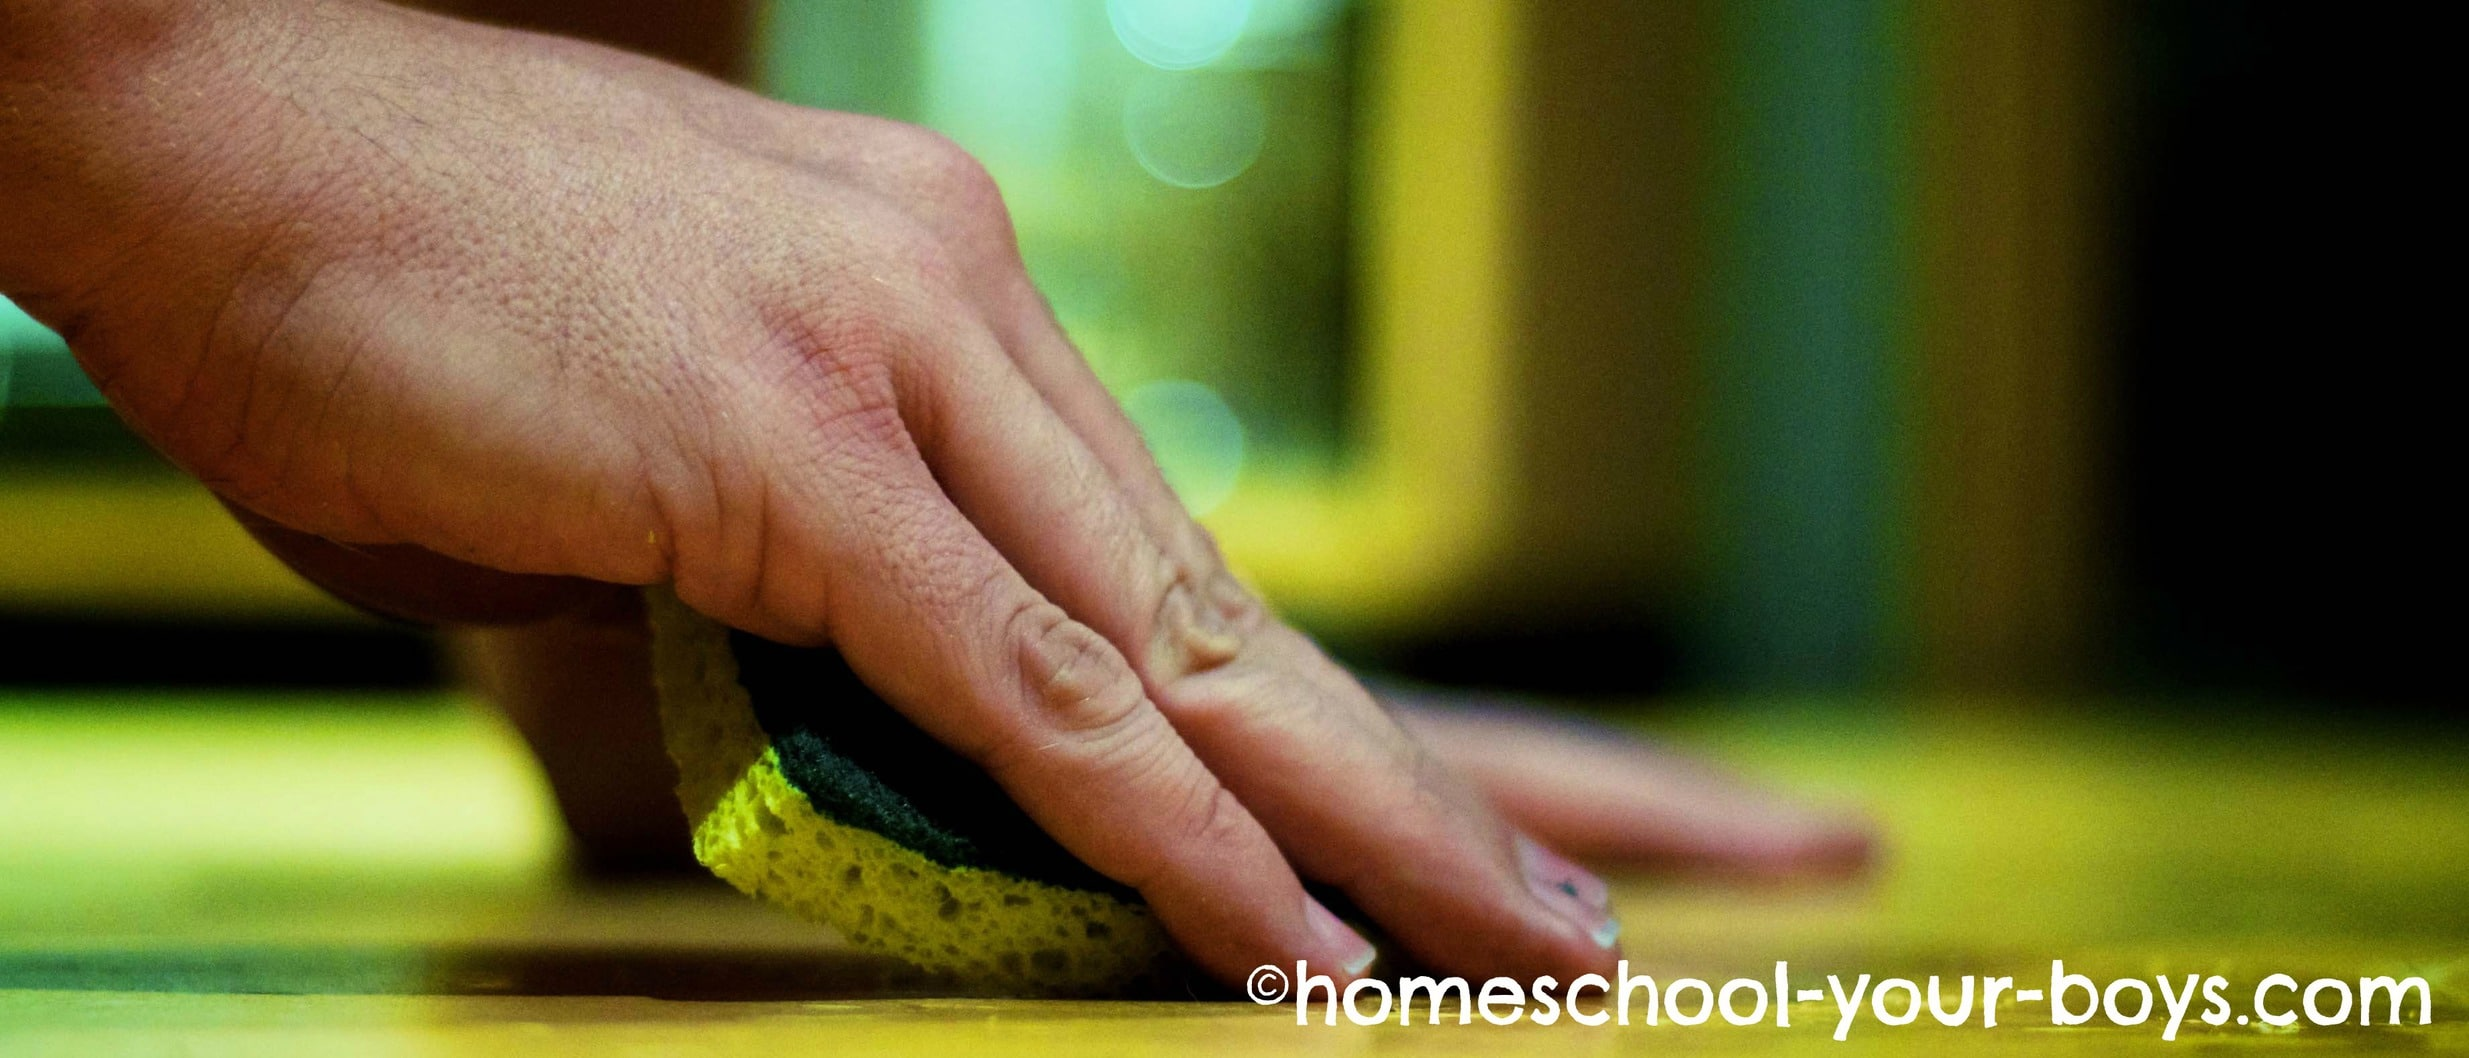 Are You the Mom or the Maid? Getting Kids to Do Chores WITHOUT Nagging